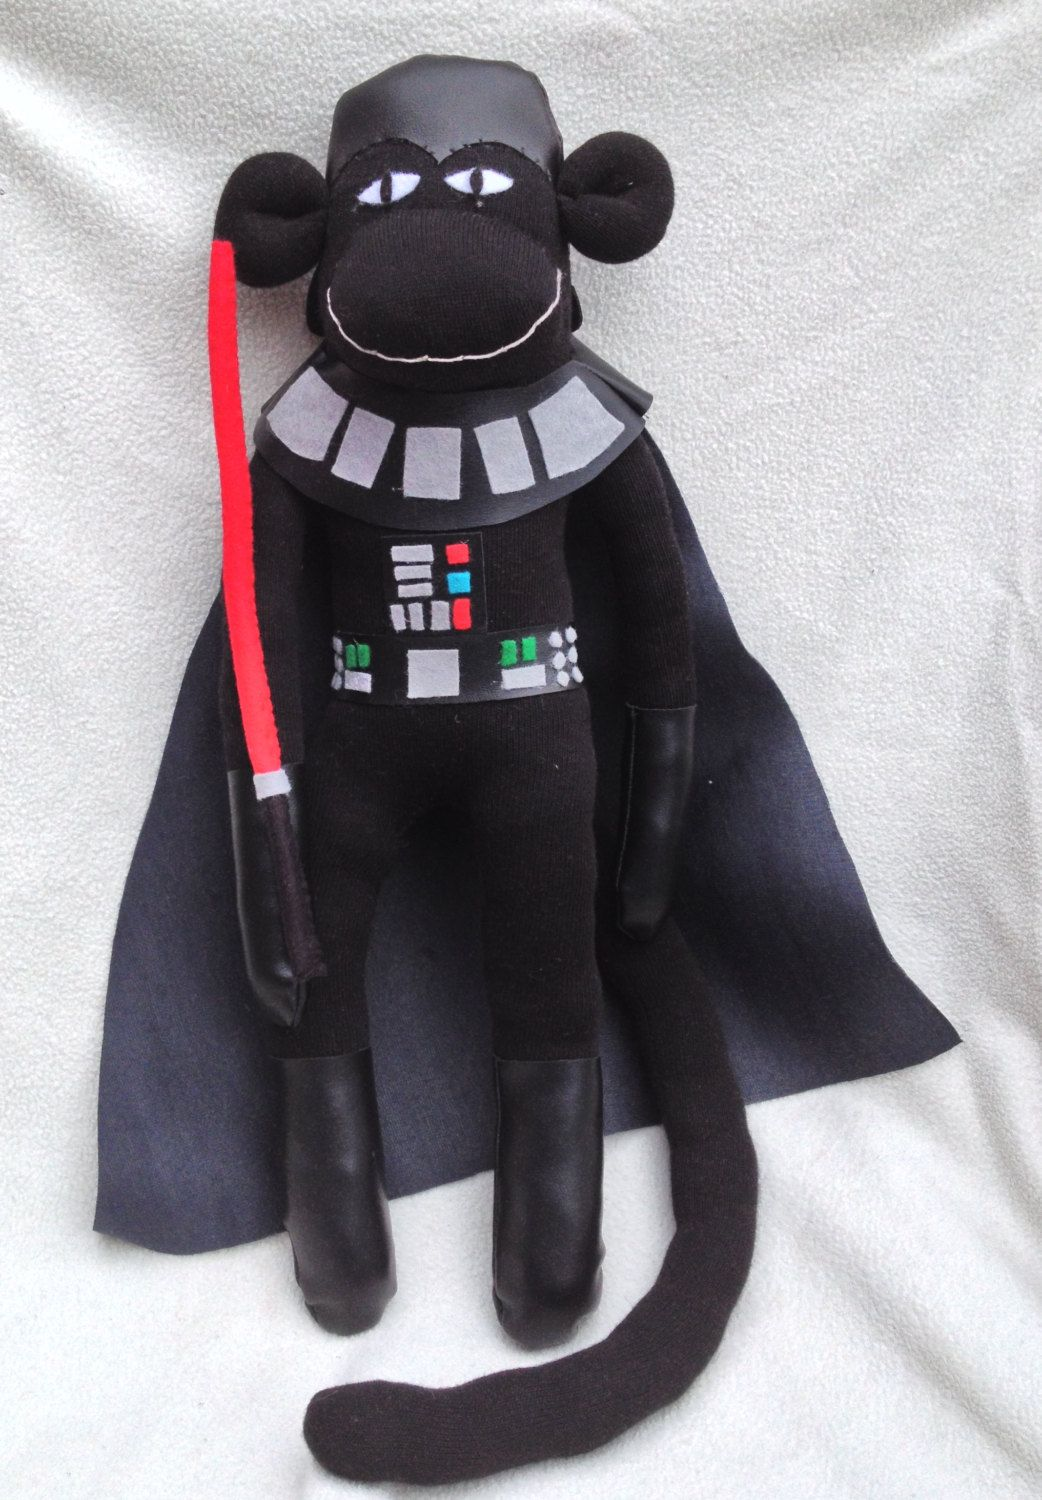 Darth Vader Sock Monkey | 눈독... | Pinterest